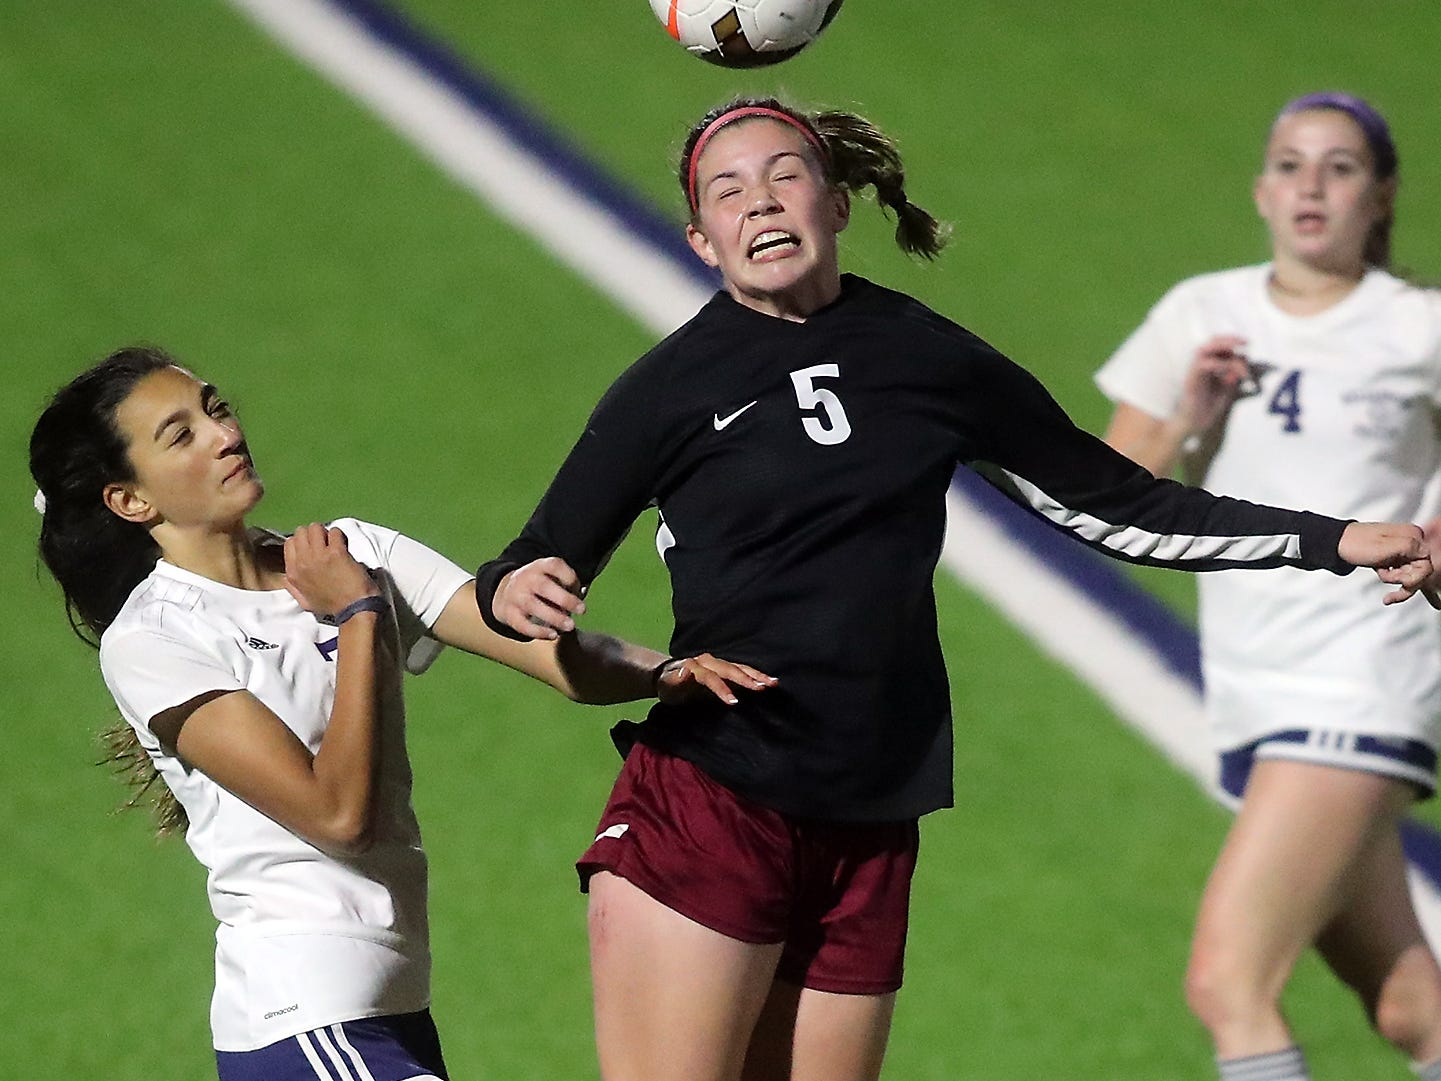 South Kitsap's Sierrah VanGesen (5) connects with a header over Bellarmine's Acacia Judkins during the first half of their game in Port Orchard on Tuesday, October 23, 2018. Bellarmine won the game 1-0.